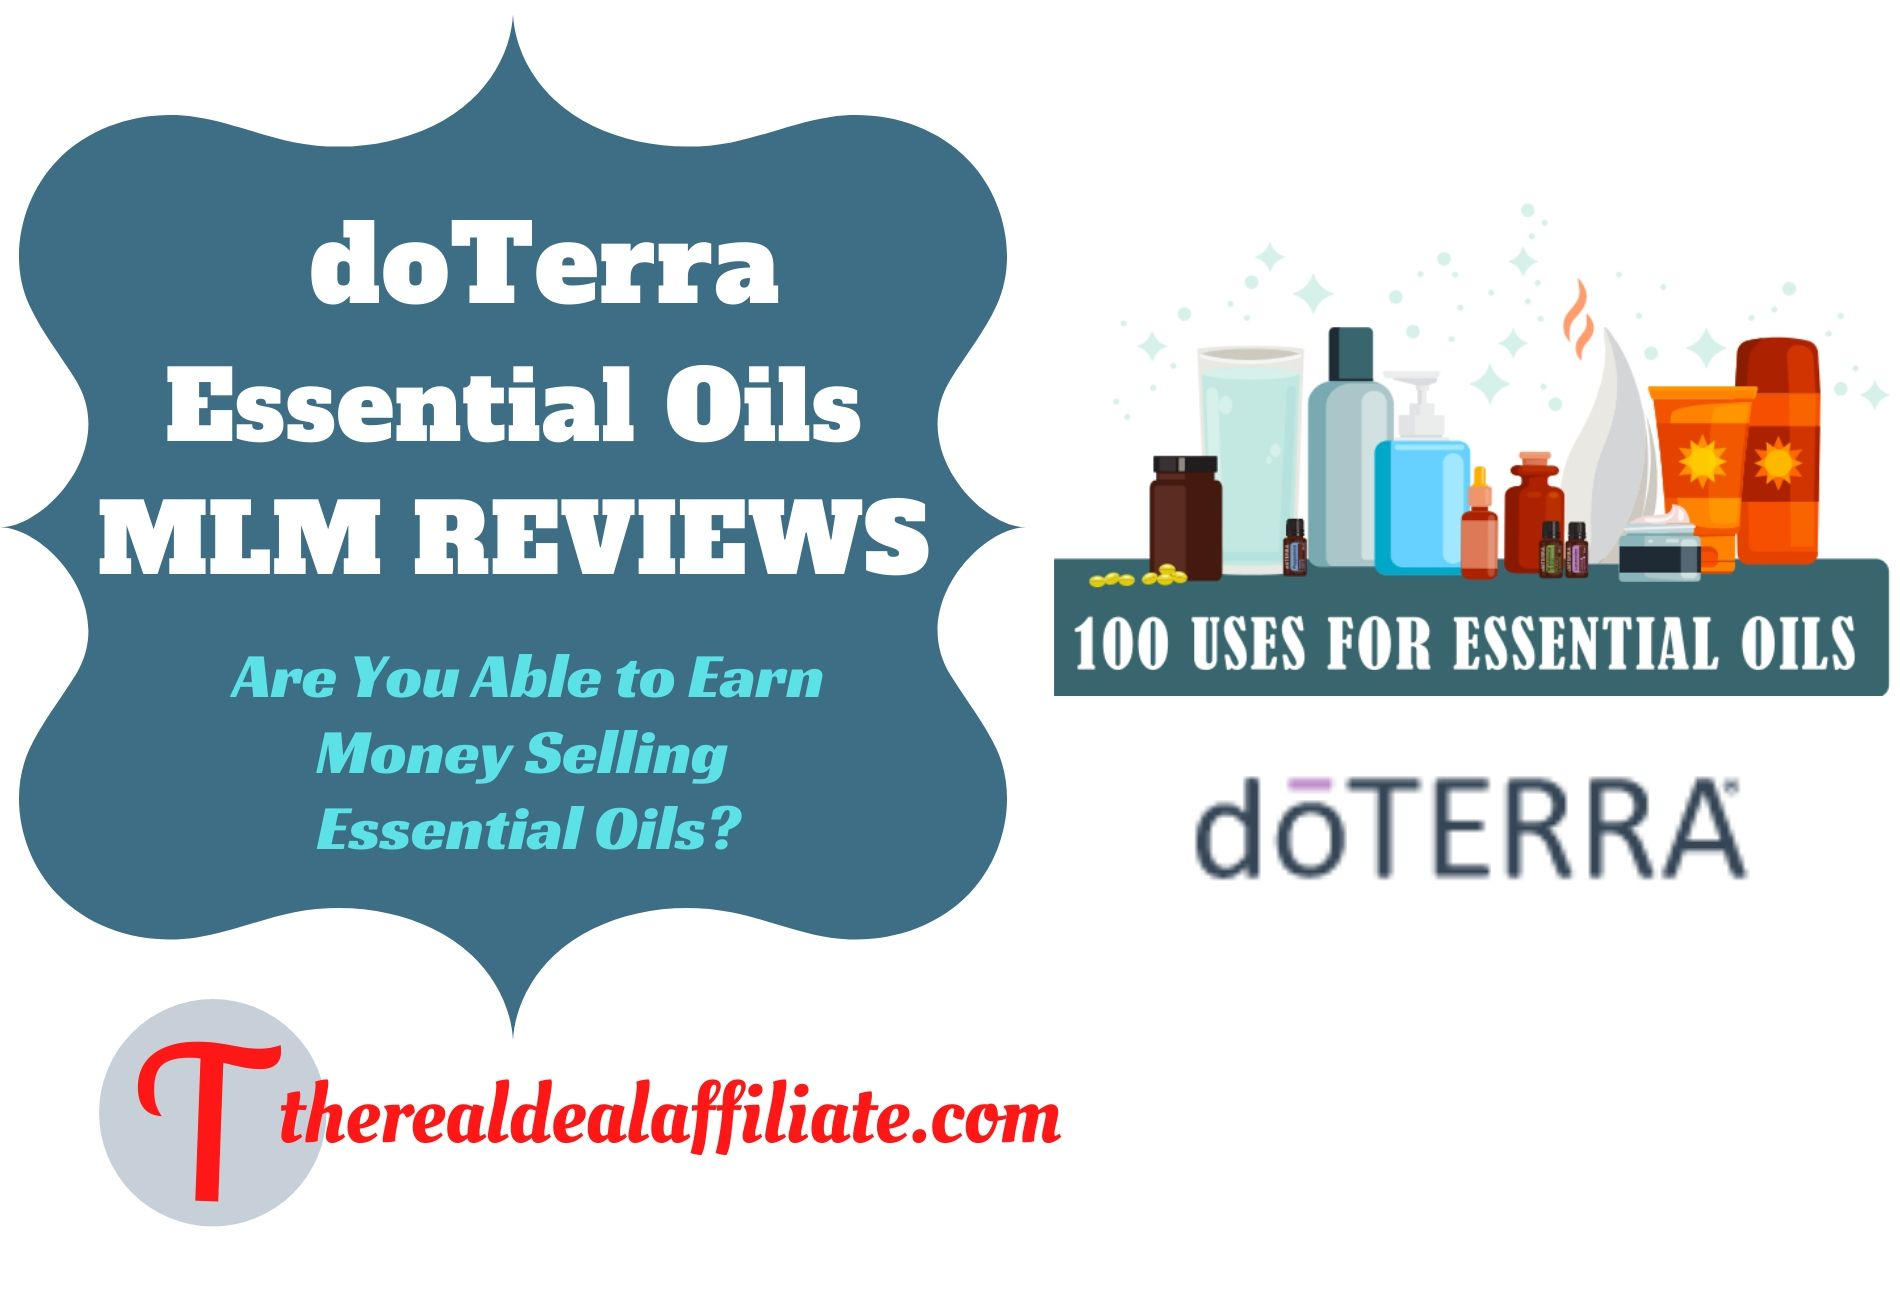 doTerra Featured Image